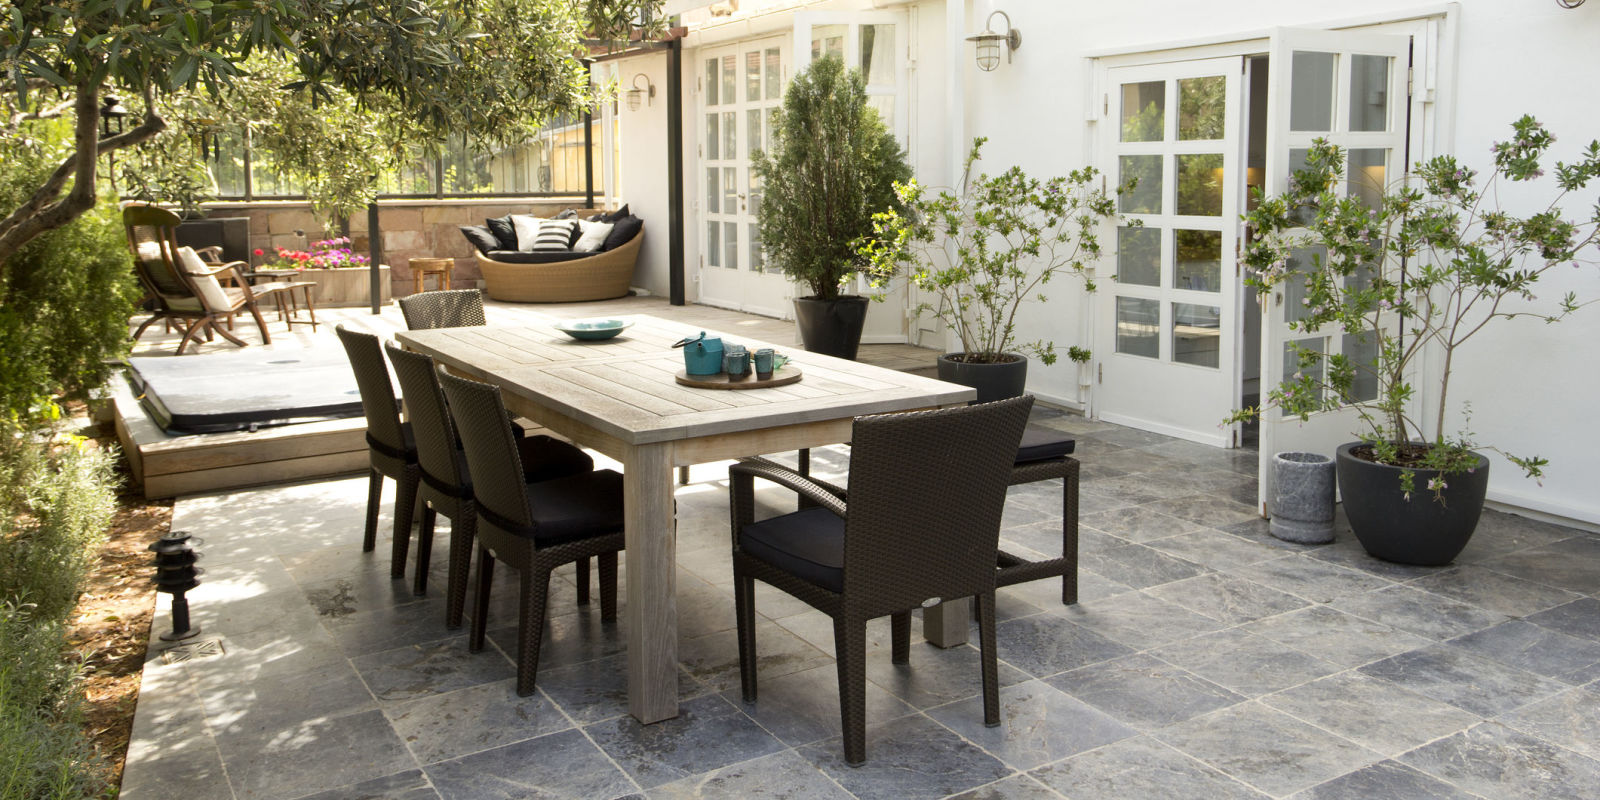 Cooldesign How to Protect Outdoor Wood Furniture